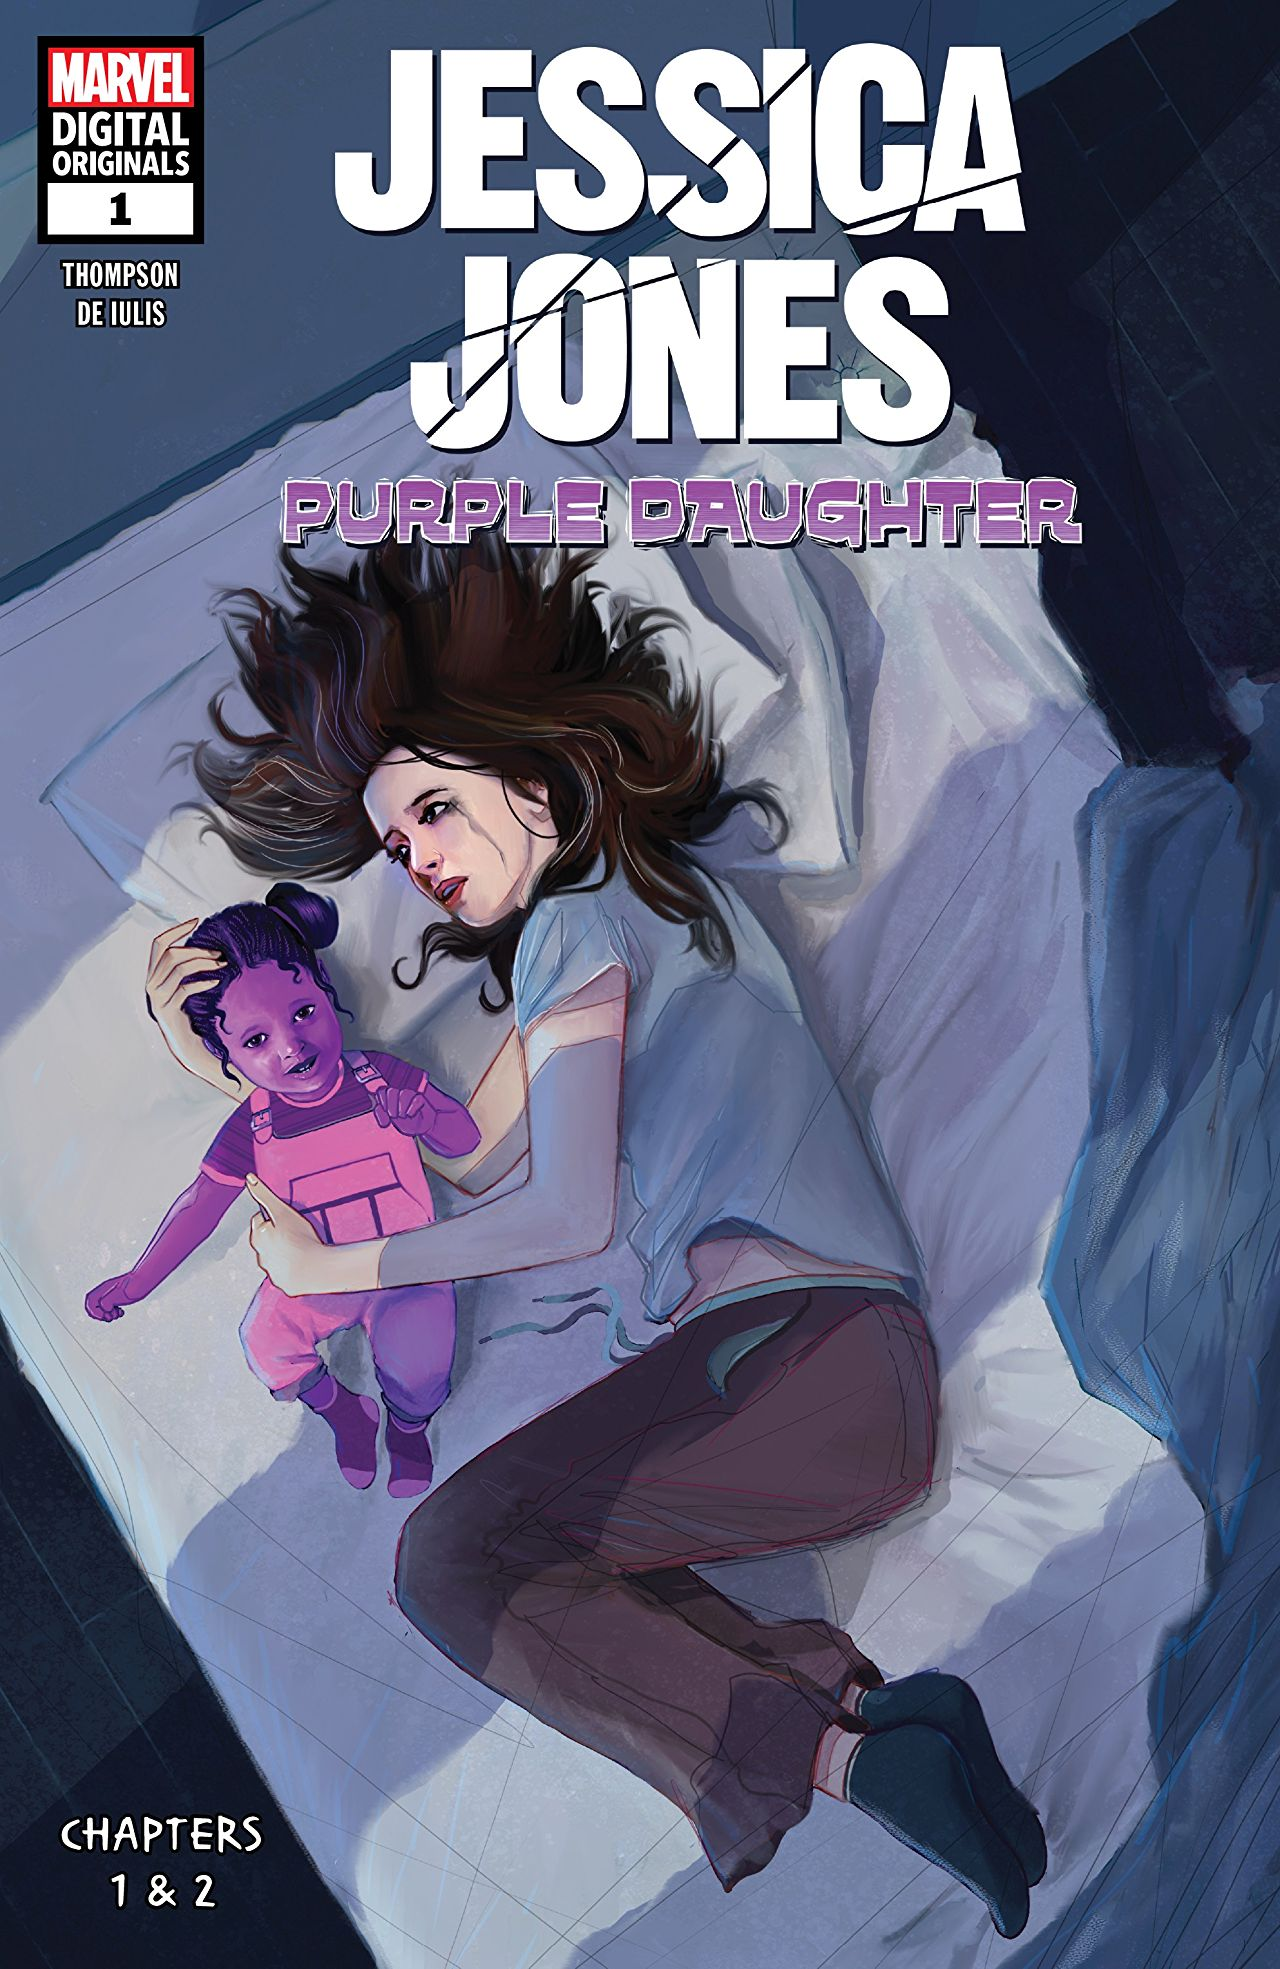 Jessica Jones: Purple Daughter - Marvel Digital Original Vol 1 1